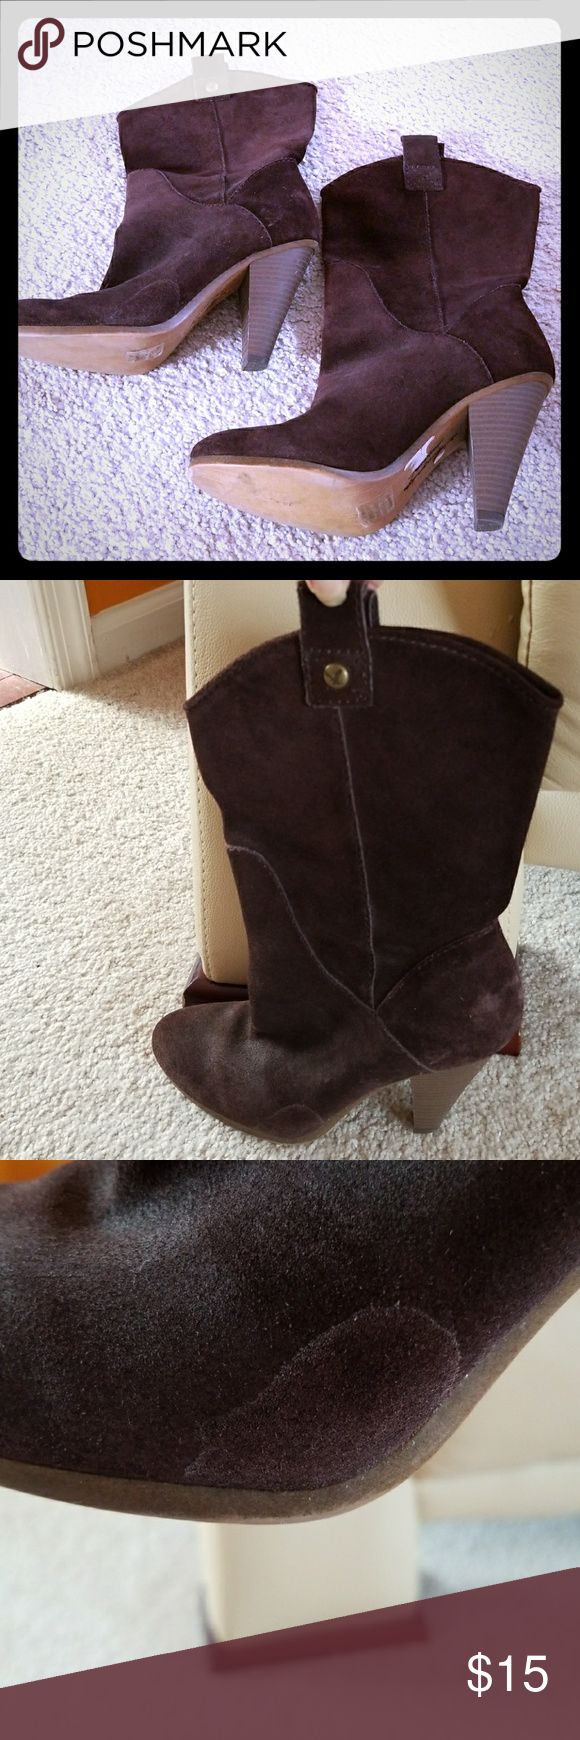 American Eagle Outfitters Brown Suede Boots As the pictures portray, these have been worn and are not perfect, BUT very cute! The marks are not obvious because of the deep chocolate color, so they still look good 👌  I'm always down for a good offer 🤝. Ask any questions and Happy Poshing!! 🛍 American Eagle Outfitters Shoes Heeled Boots